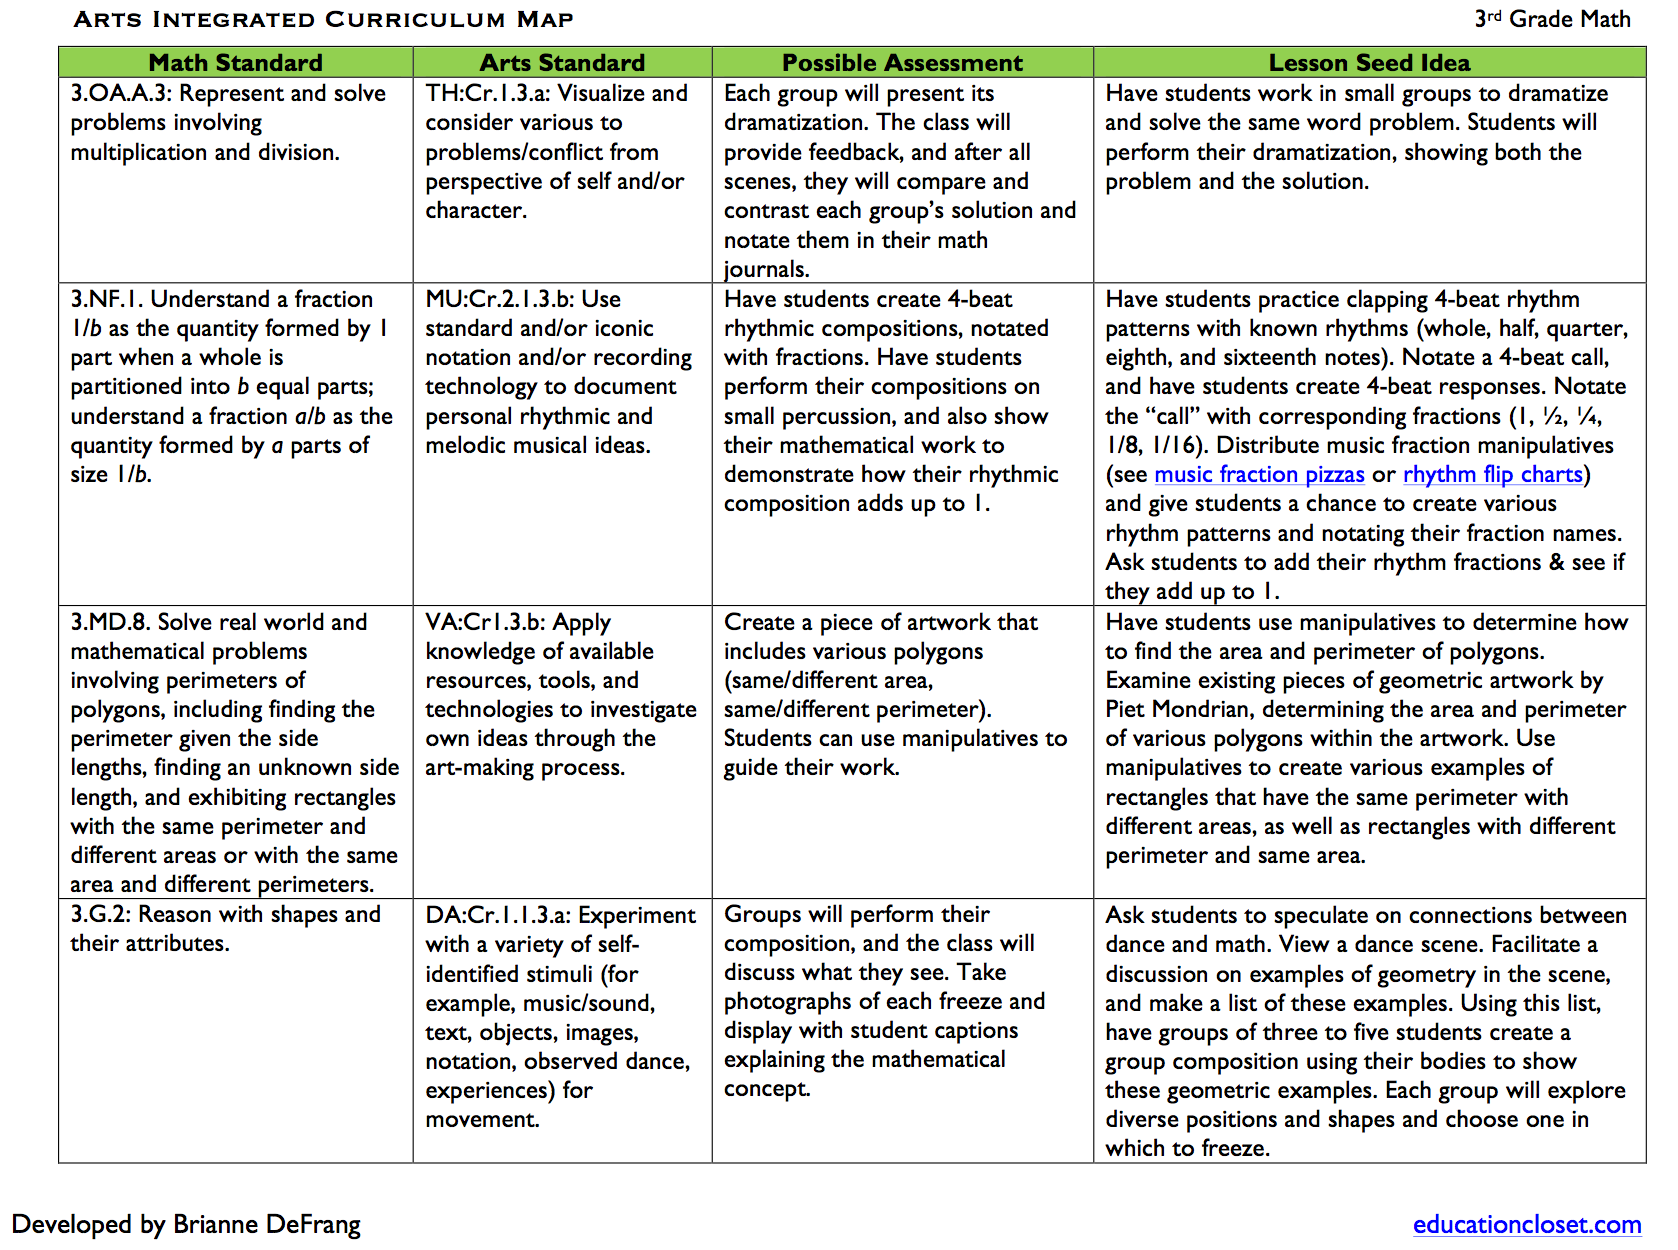 Arts Integrated Math Sample Curriculum Map | EducationCloset